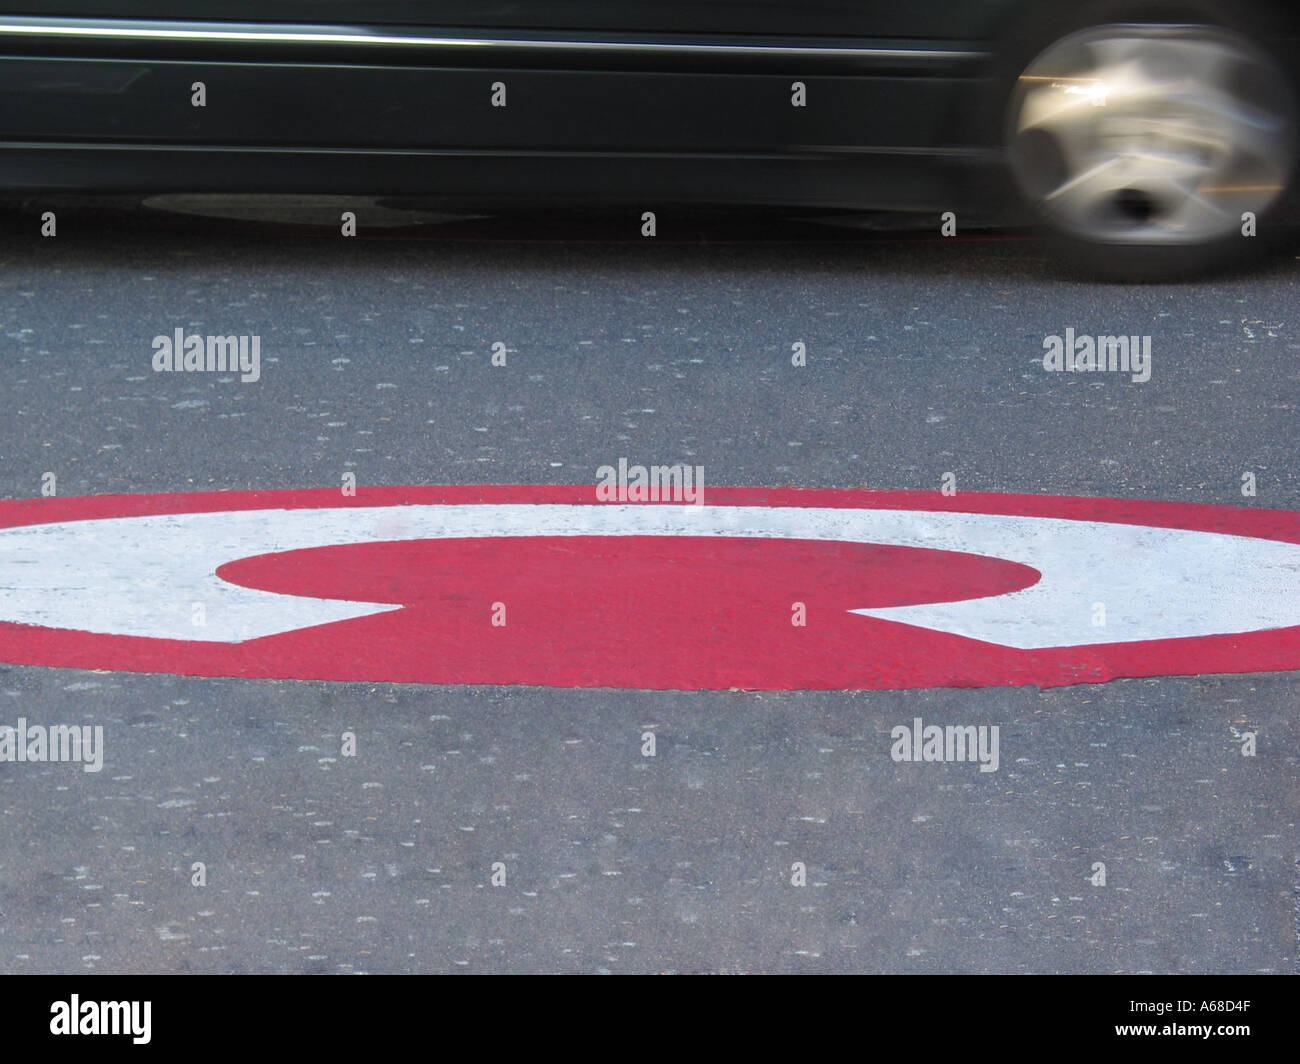 London Congestion Charge Road Sign London England Great Britain - Stock Image